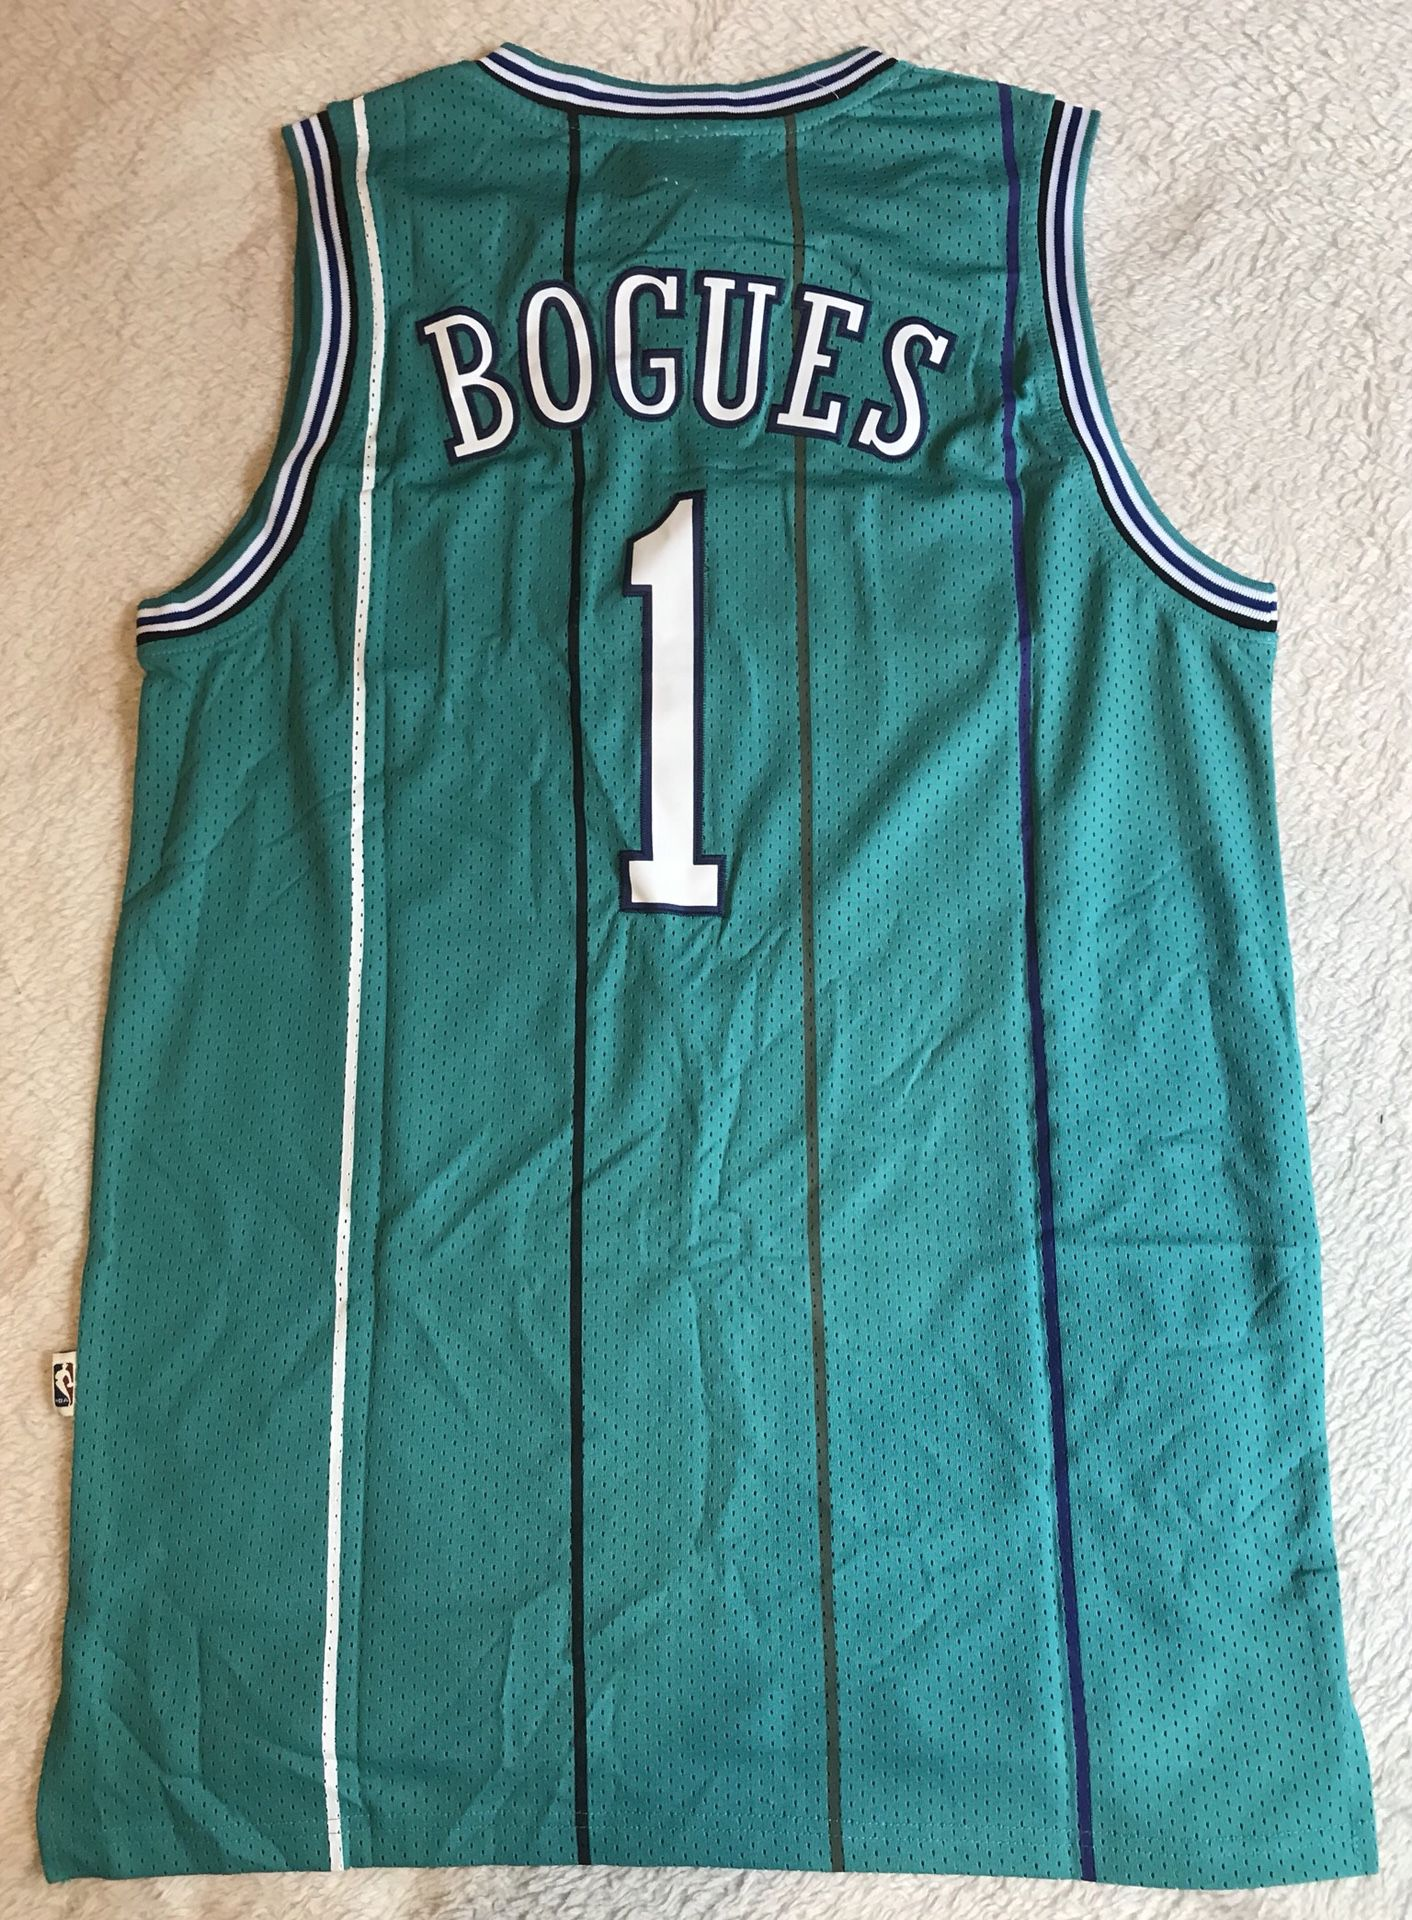 Adidas Muggsy Bogues Jersey for Sale in Blaine, MN - OfferUp